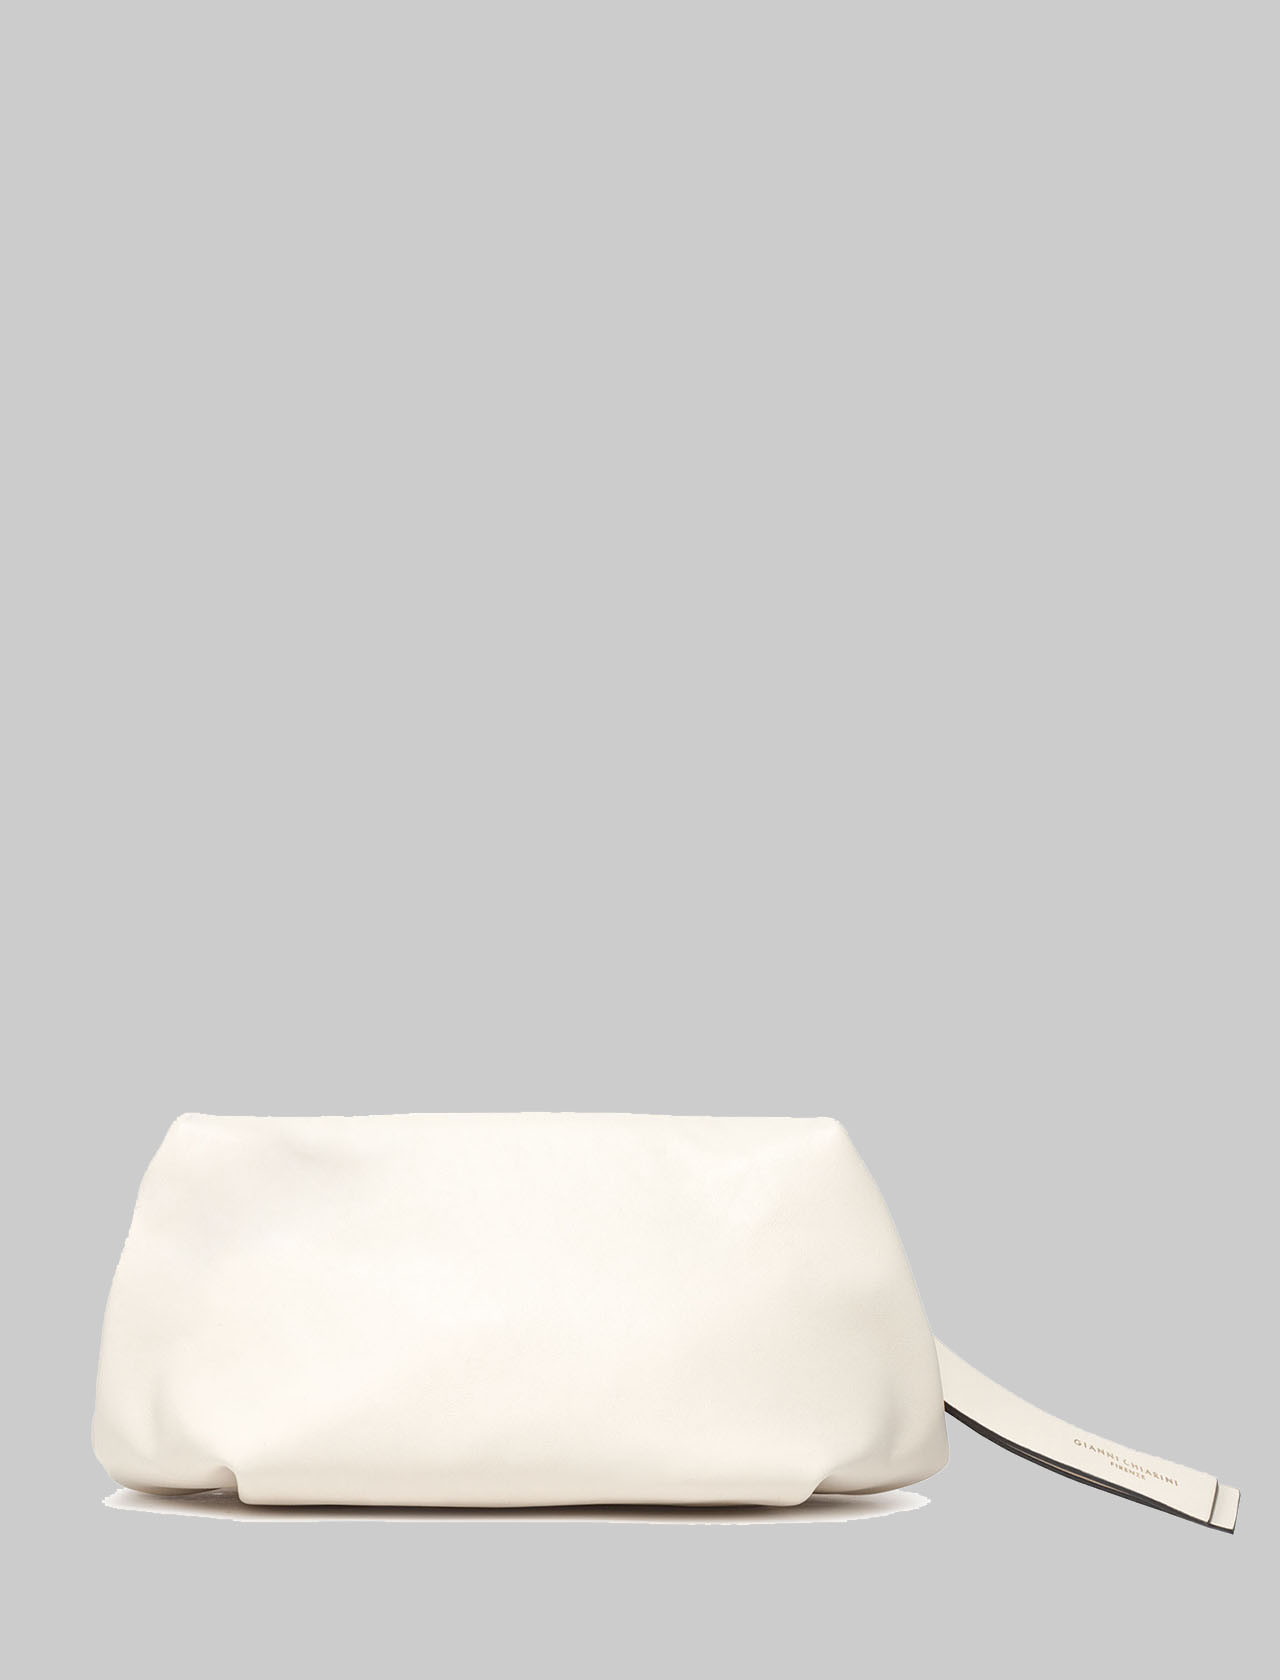 Colette Woman Bag In Cream Leather With Gold Chain And Removable Leather Shoulder Strap Gianni Chiarini | Bags and backpacks | BS84053890